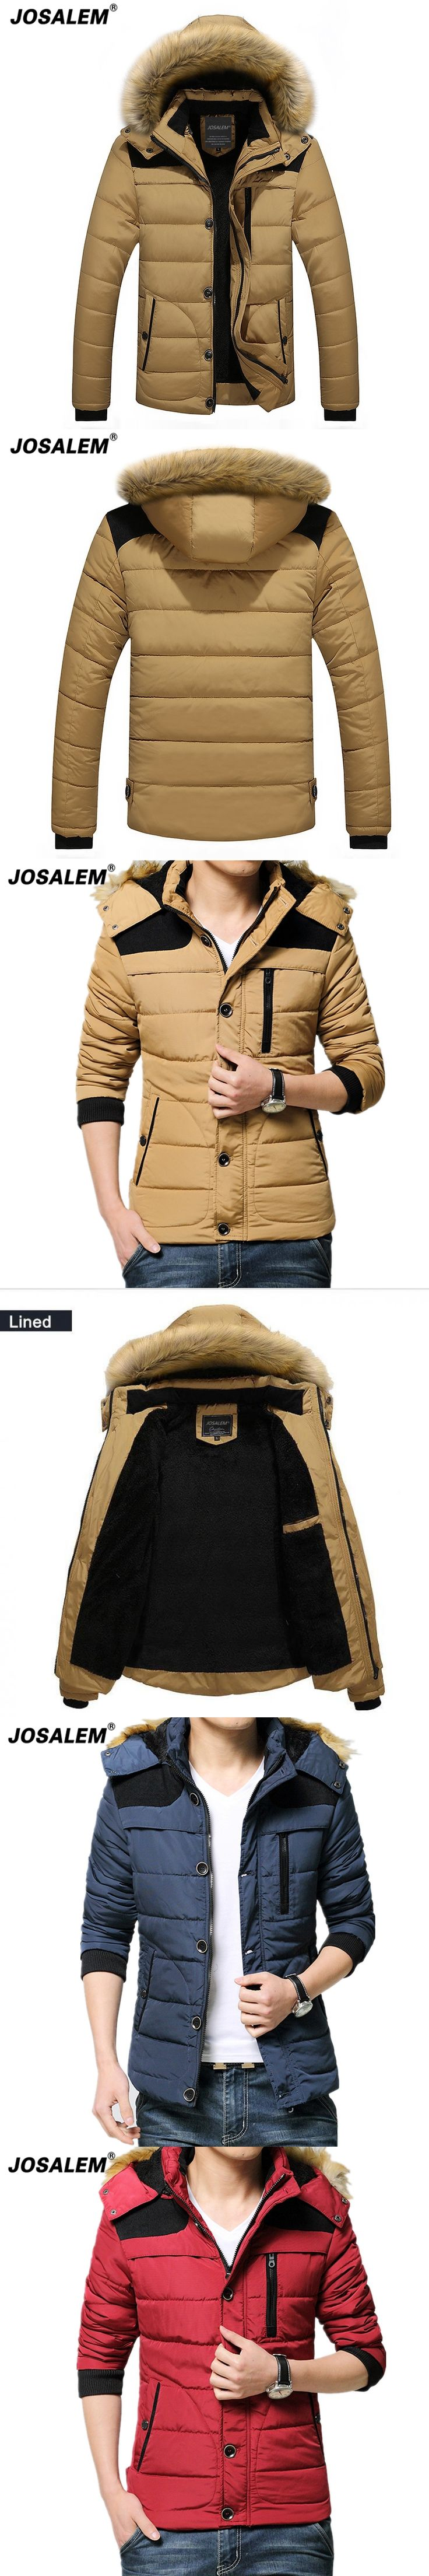 Black  Parka Men 2017 Winter Jacket Man Fashion Design Fur Removable Hooded Thick Warm Zipper Cotton Padded Coat Male Outerwear